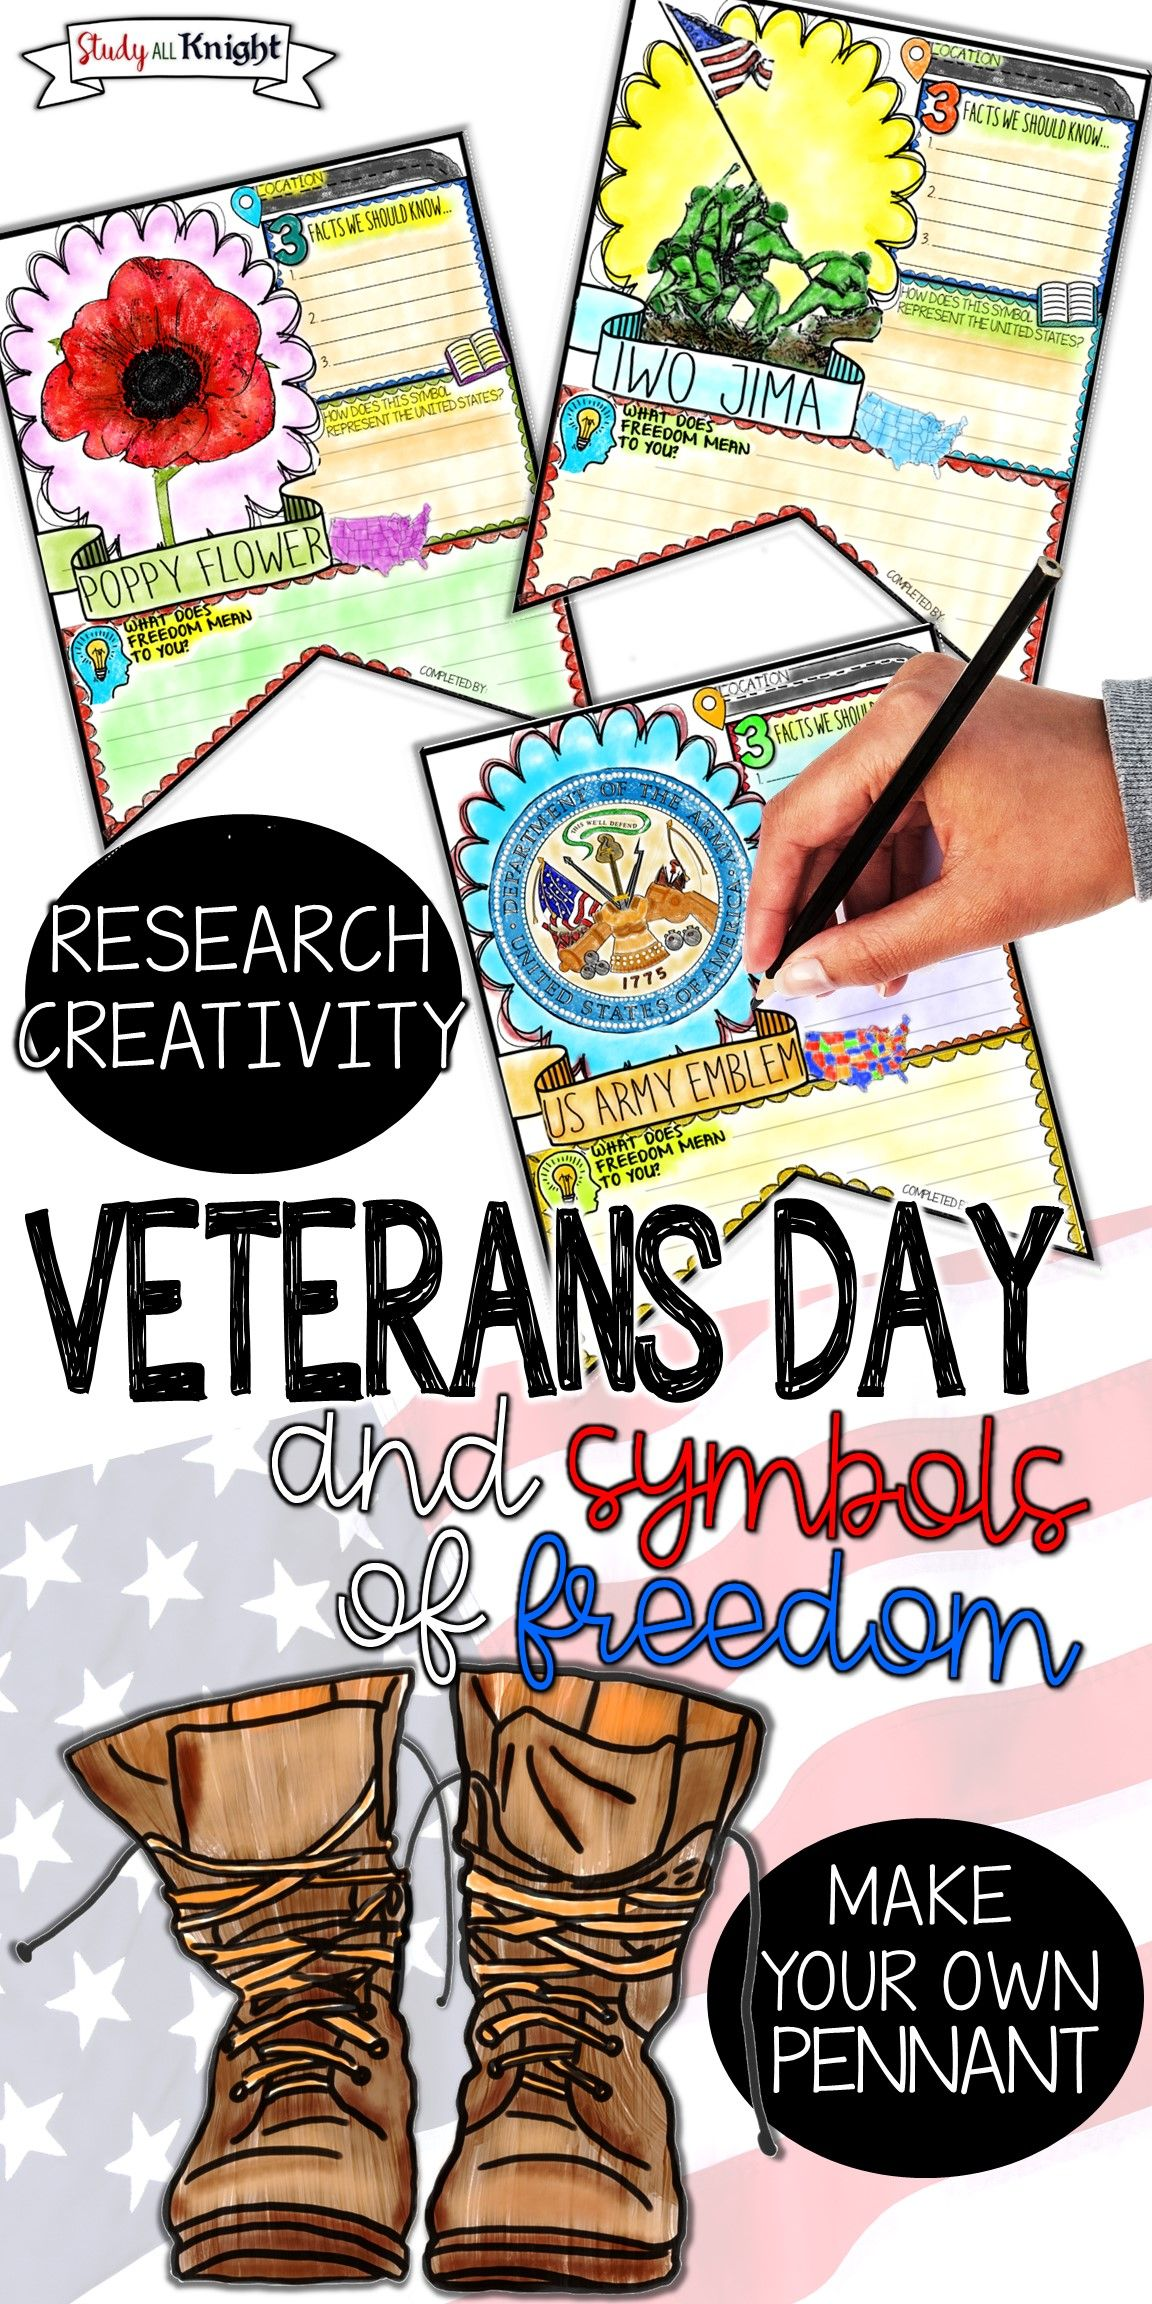 Veterans Day Symbols Of Freedom Research Pennant Make